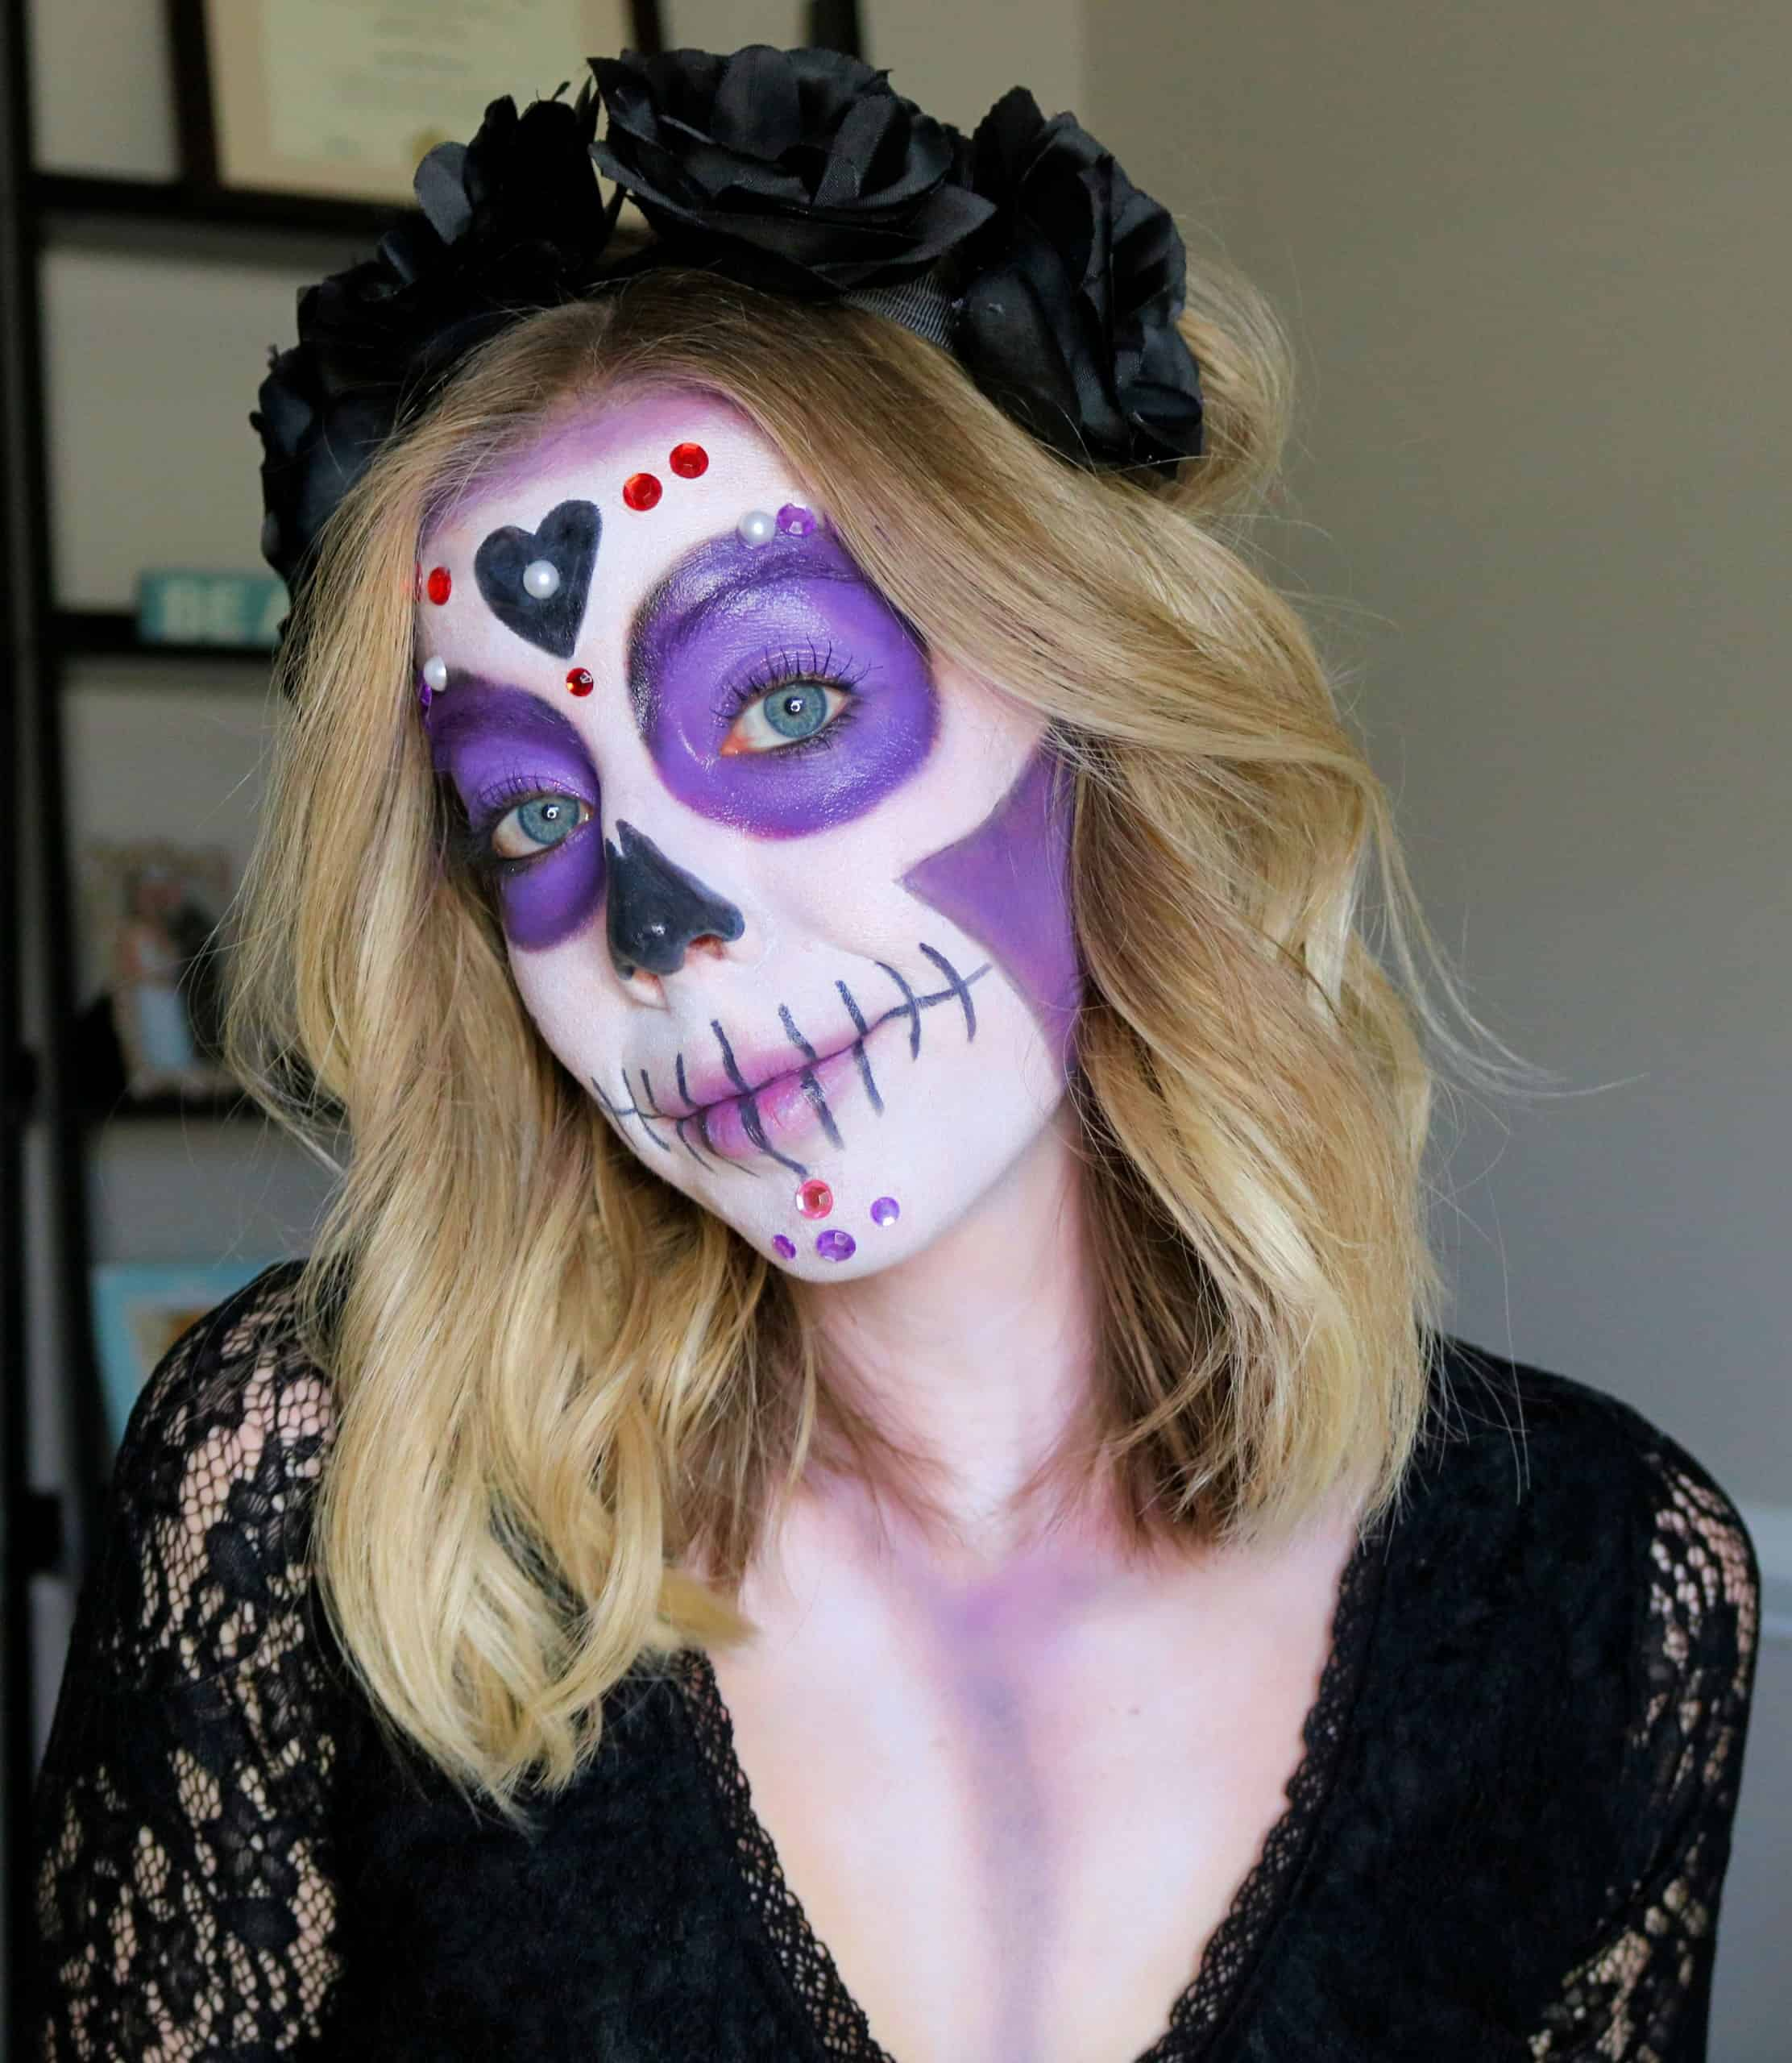 Learn how to create a beautiful, purple sugar skull makeup for Halloween or Day of the Dead using my Easy Sugar Skull Makeup Tutorial! This simple, pretty, and colorful sugar skull is perfect for beginners and uses affordable drugstore makeup products, glitter, and rhinestone jewels. #sugarskullmakeup #sugarskull #halloweenmakeup #dayofthedead